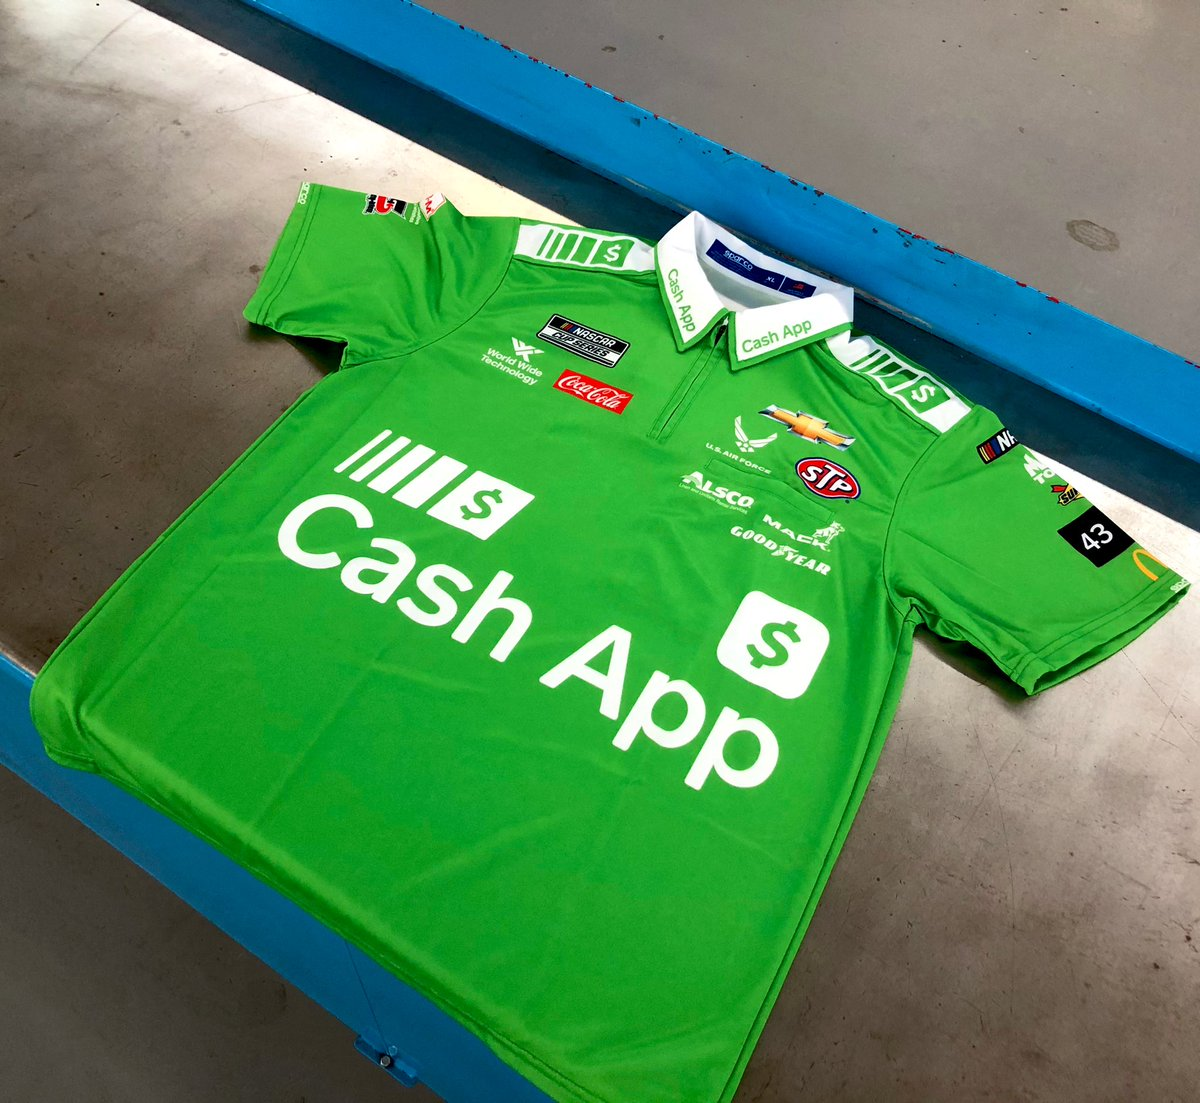 ✨GIVEAWAY ✨  Here's a chance to add this @CashApp crew shirt to your collection!  To enter:  1. Follow us @RPMotorsports  2. Like and RT this tweet  We'll select a winner when we reach 100K followers, be sure to tag your friends!